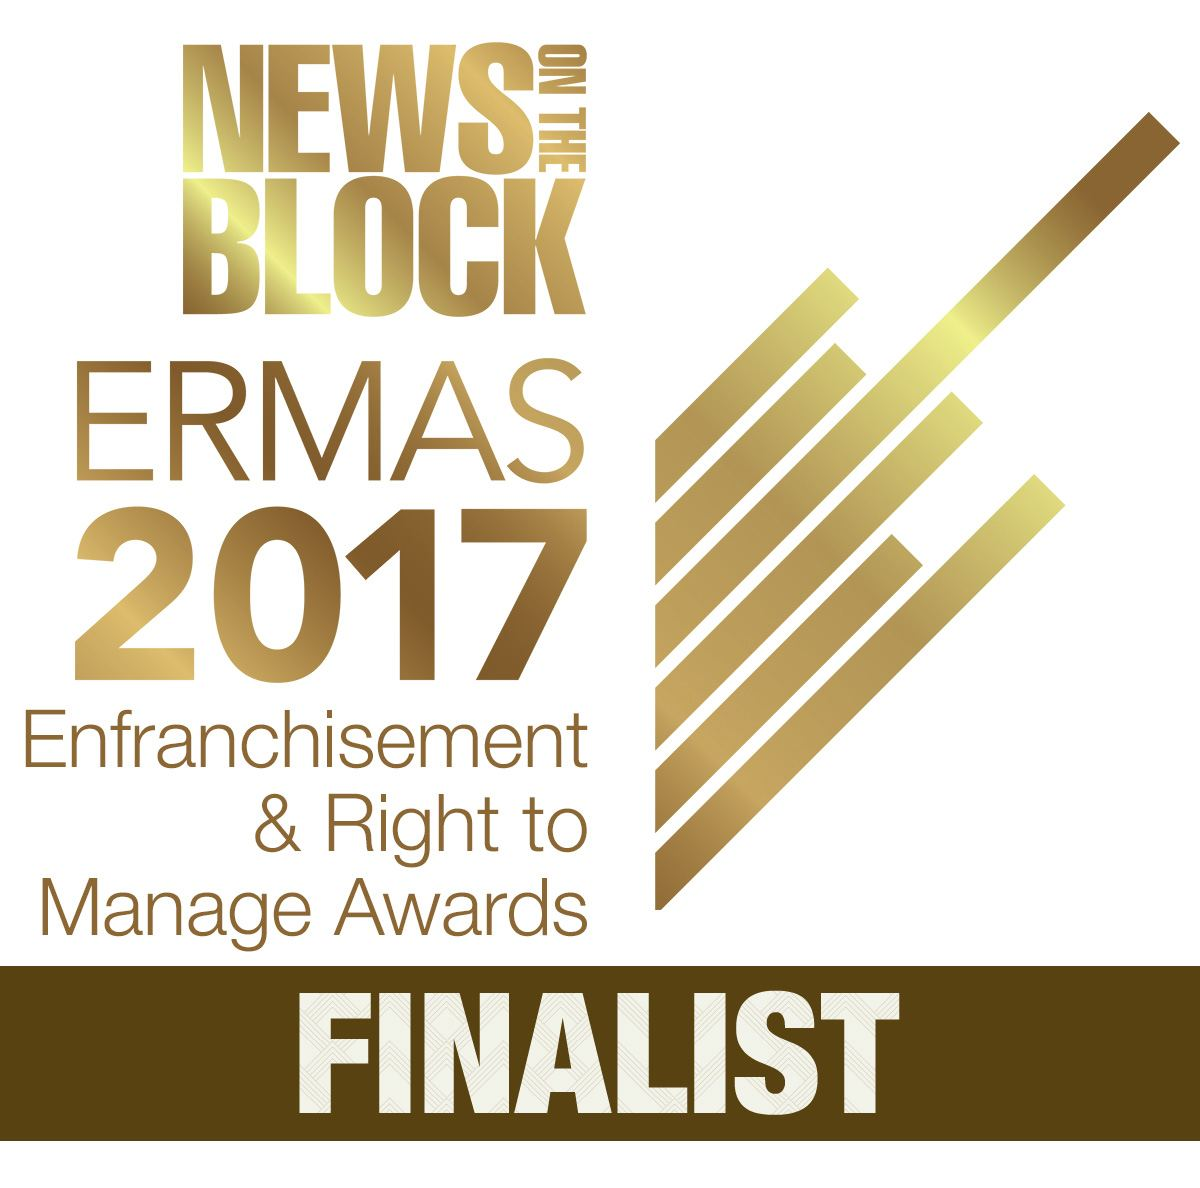 2017 Enfranchisement and Right to Manage Award Finalist Logo